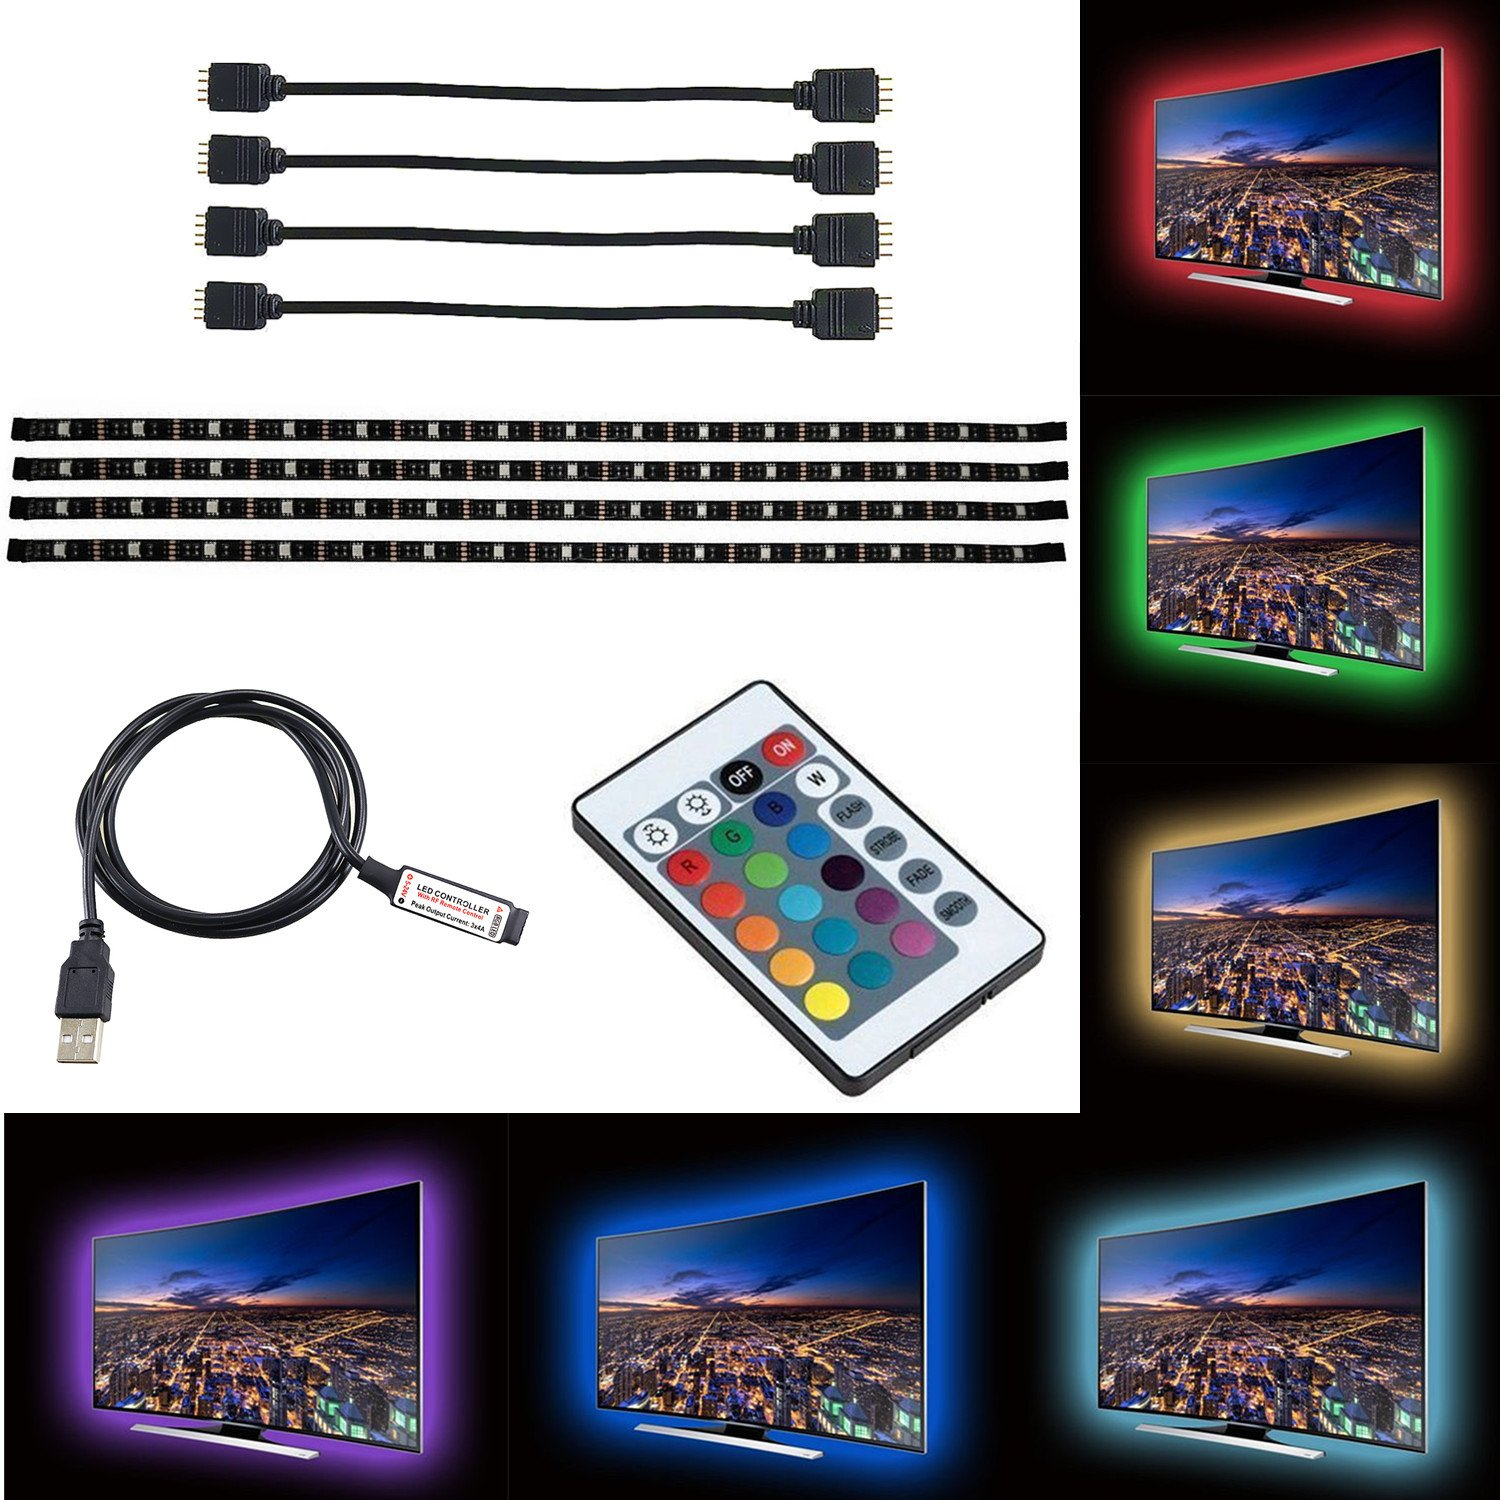 ZRUI Led Strip Lights for 40-60 inches TV Backdrop Lighting,USB LED TV Backlight Kit with Remote, 16 Color 5050 Leds Bias Lighting for HDTV PC Monitor Home Theater Decoration (1 for 4pcs set)